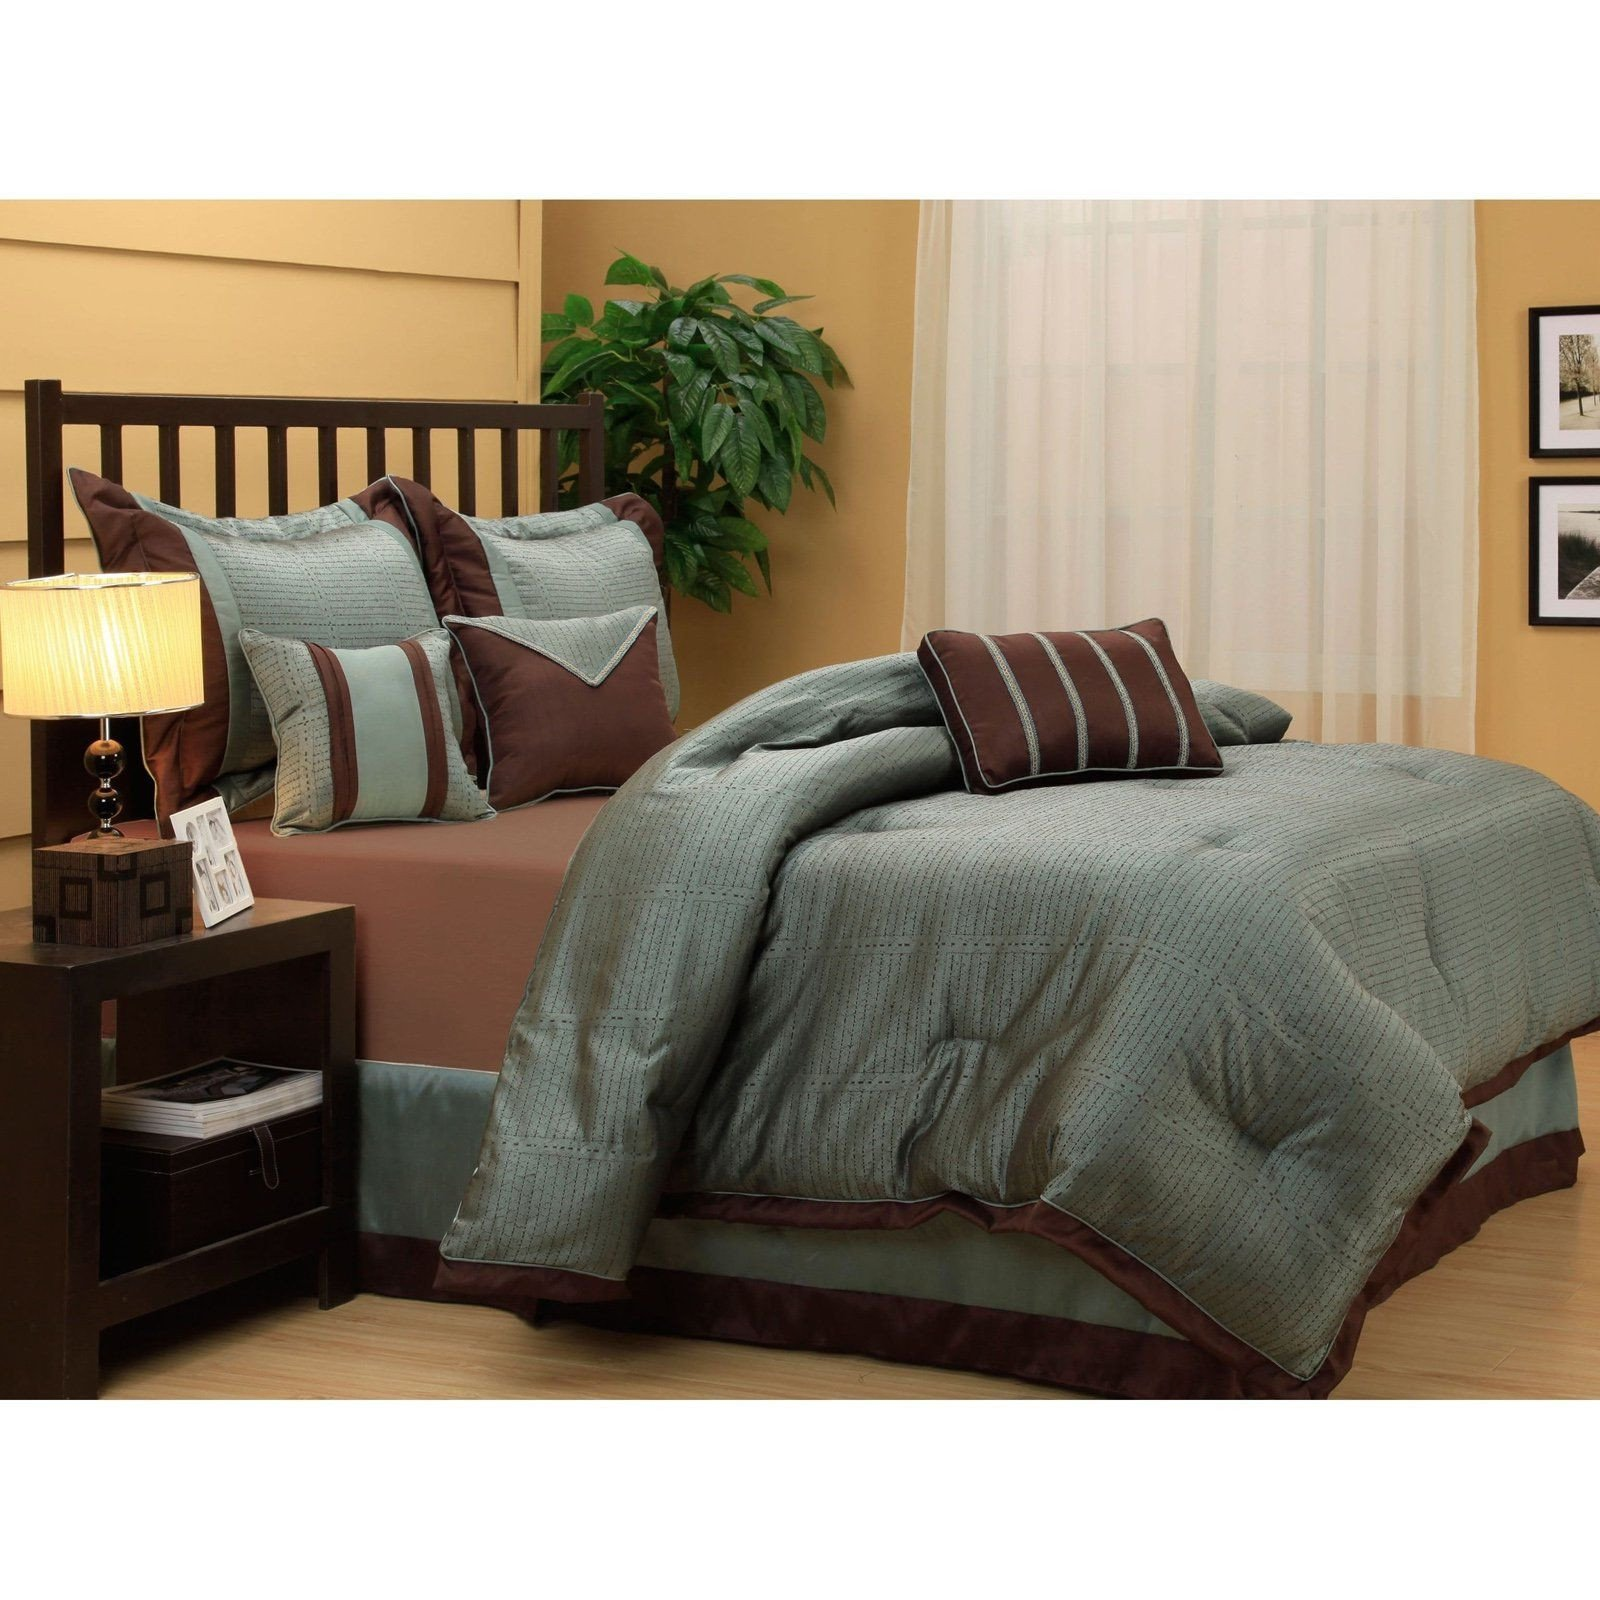 7 Piece Bedroom Set King Beautiful tobey 7 Piece Bedding Set by Nanshing